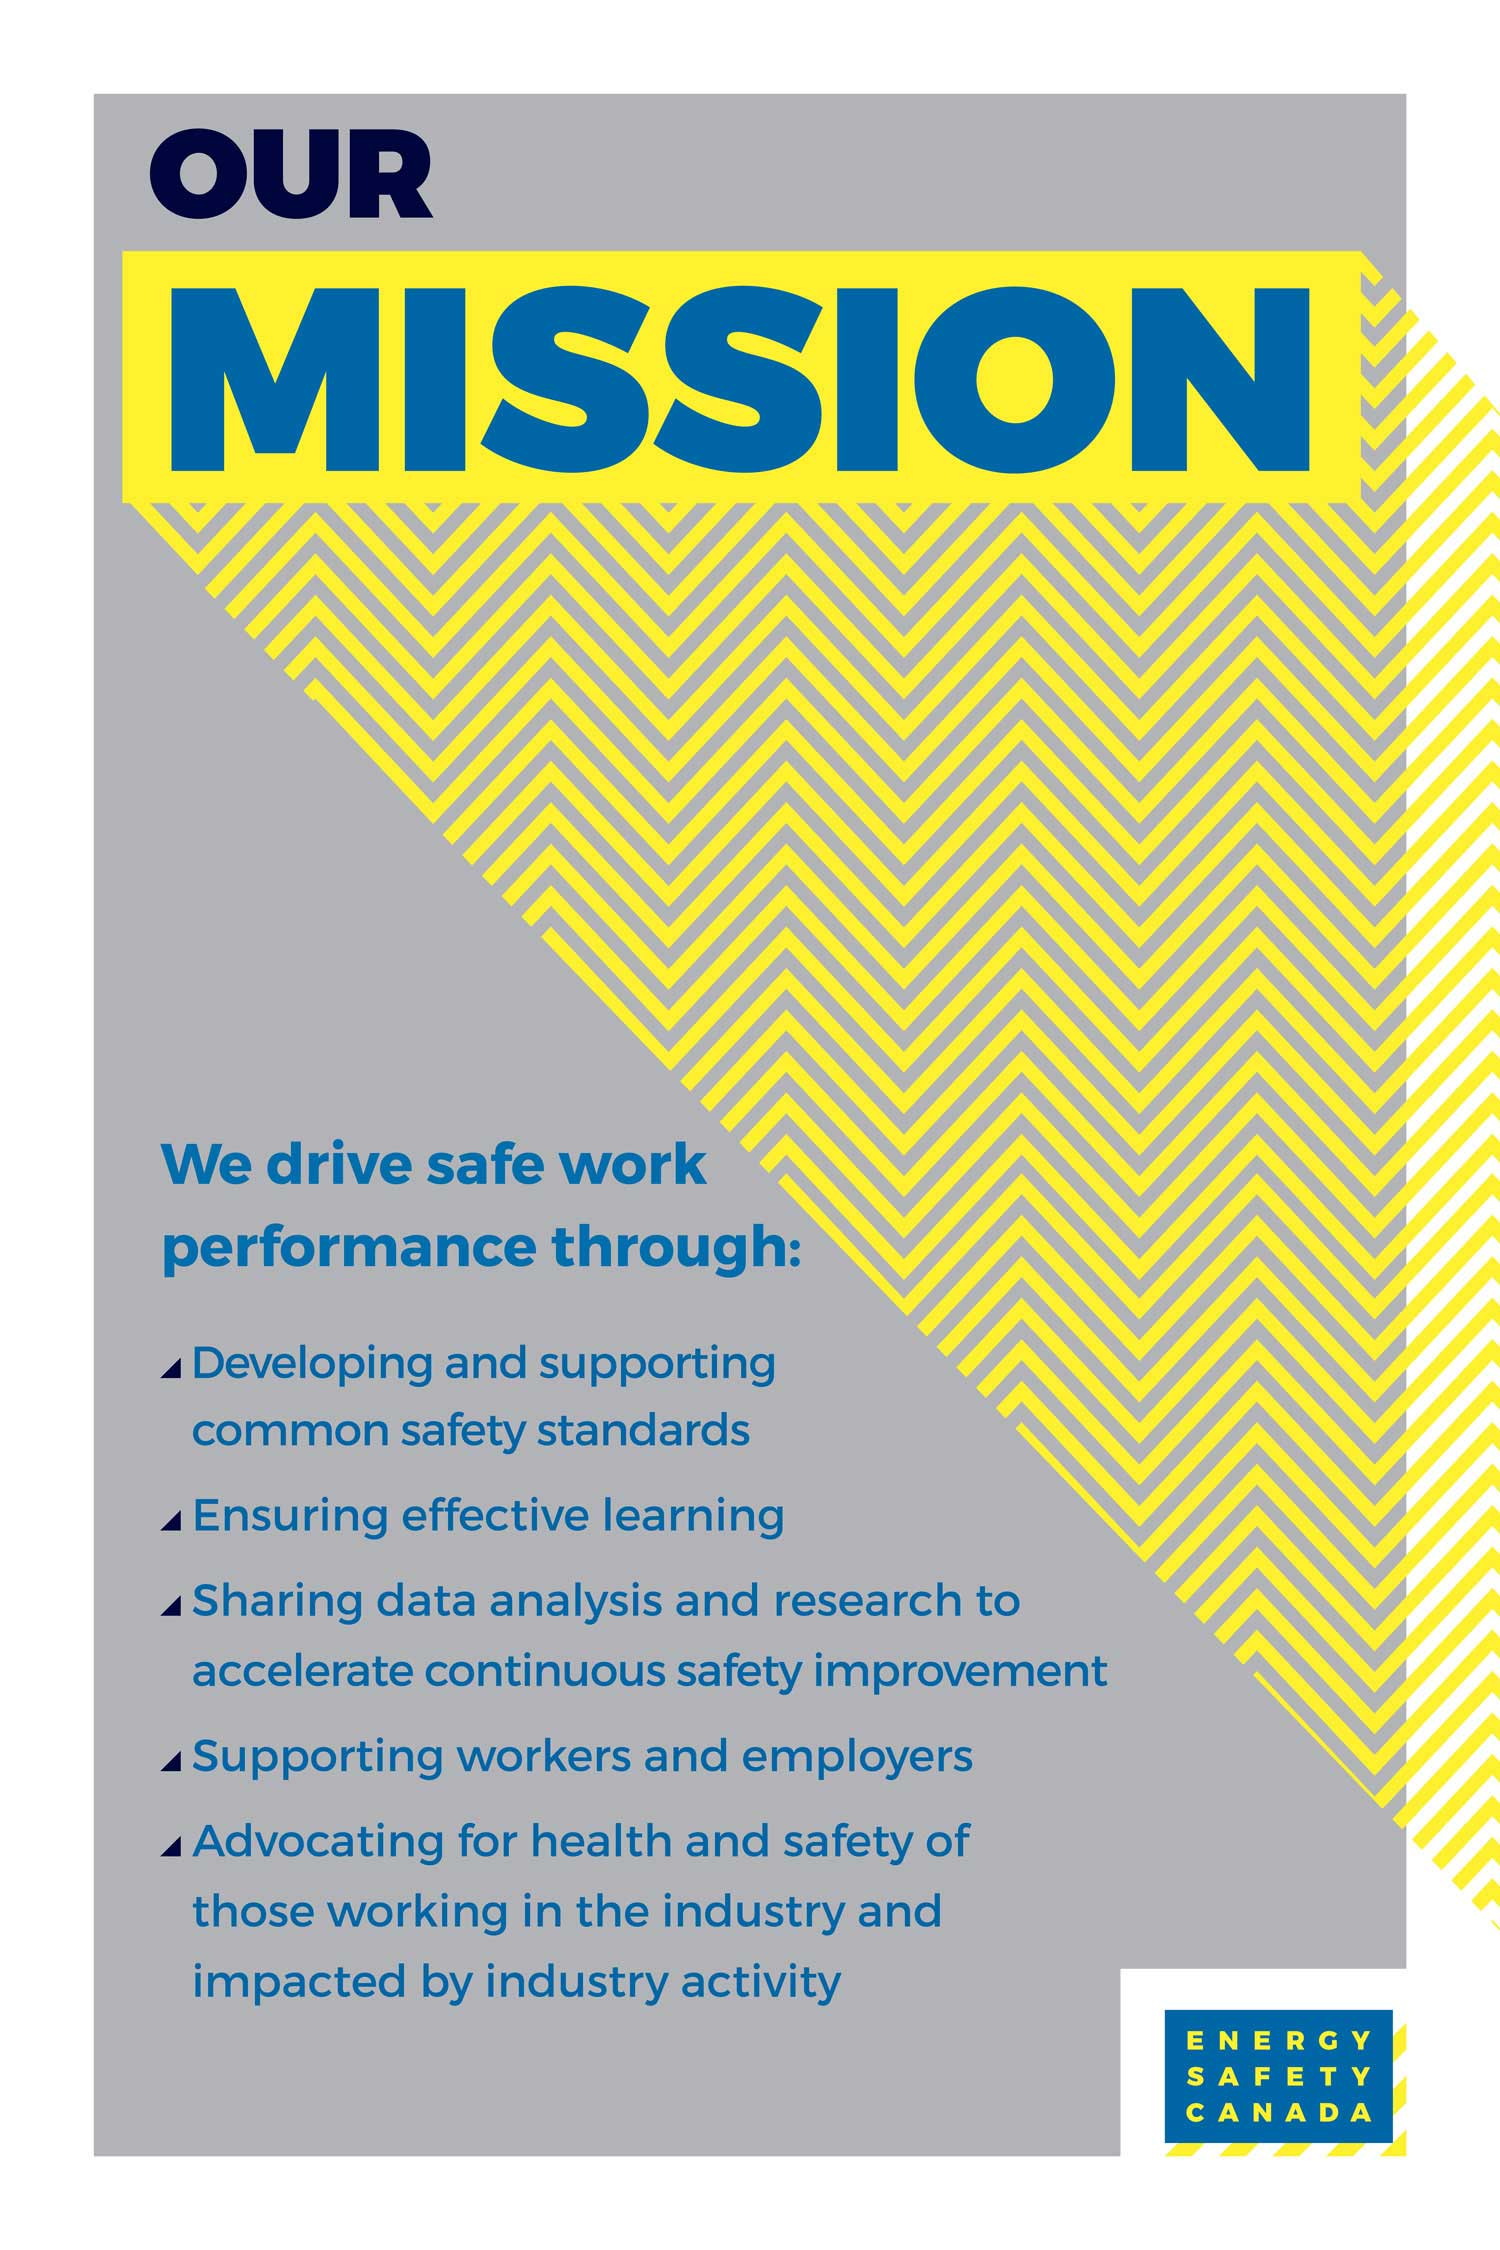 Internal brand poster graphic design expressing energy safety canada corporate mission statement by studio forum